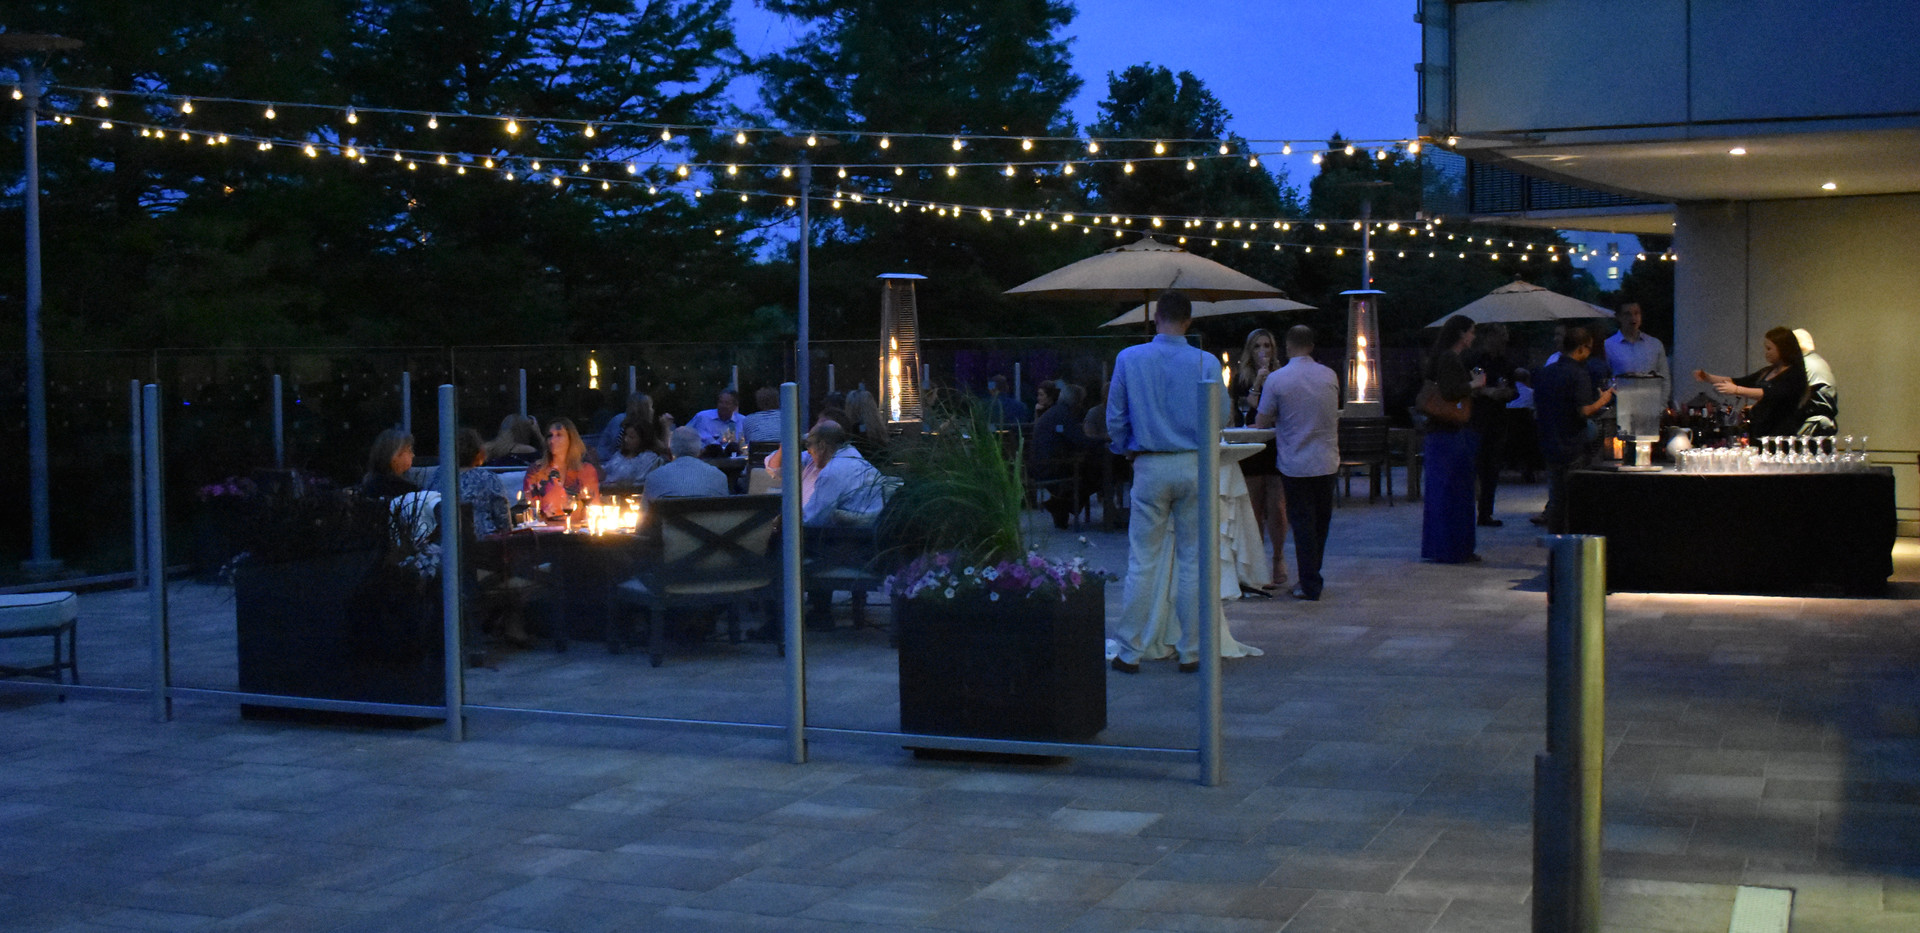 CityGate Grille Patio event